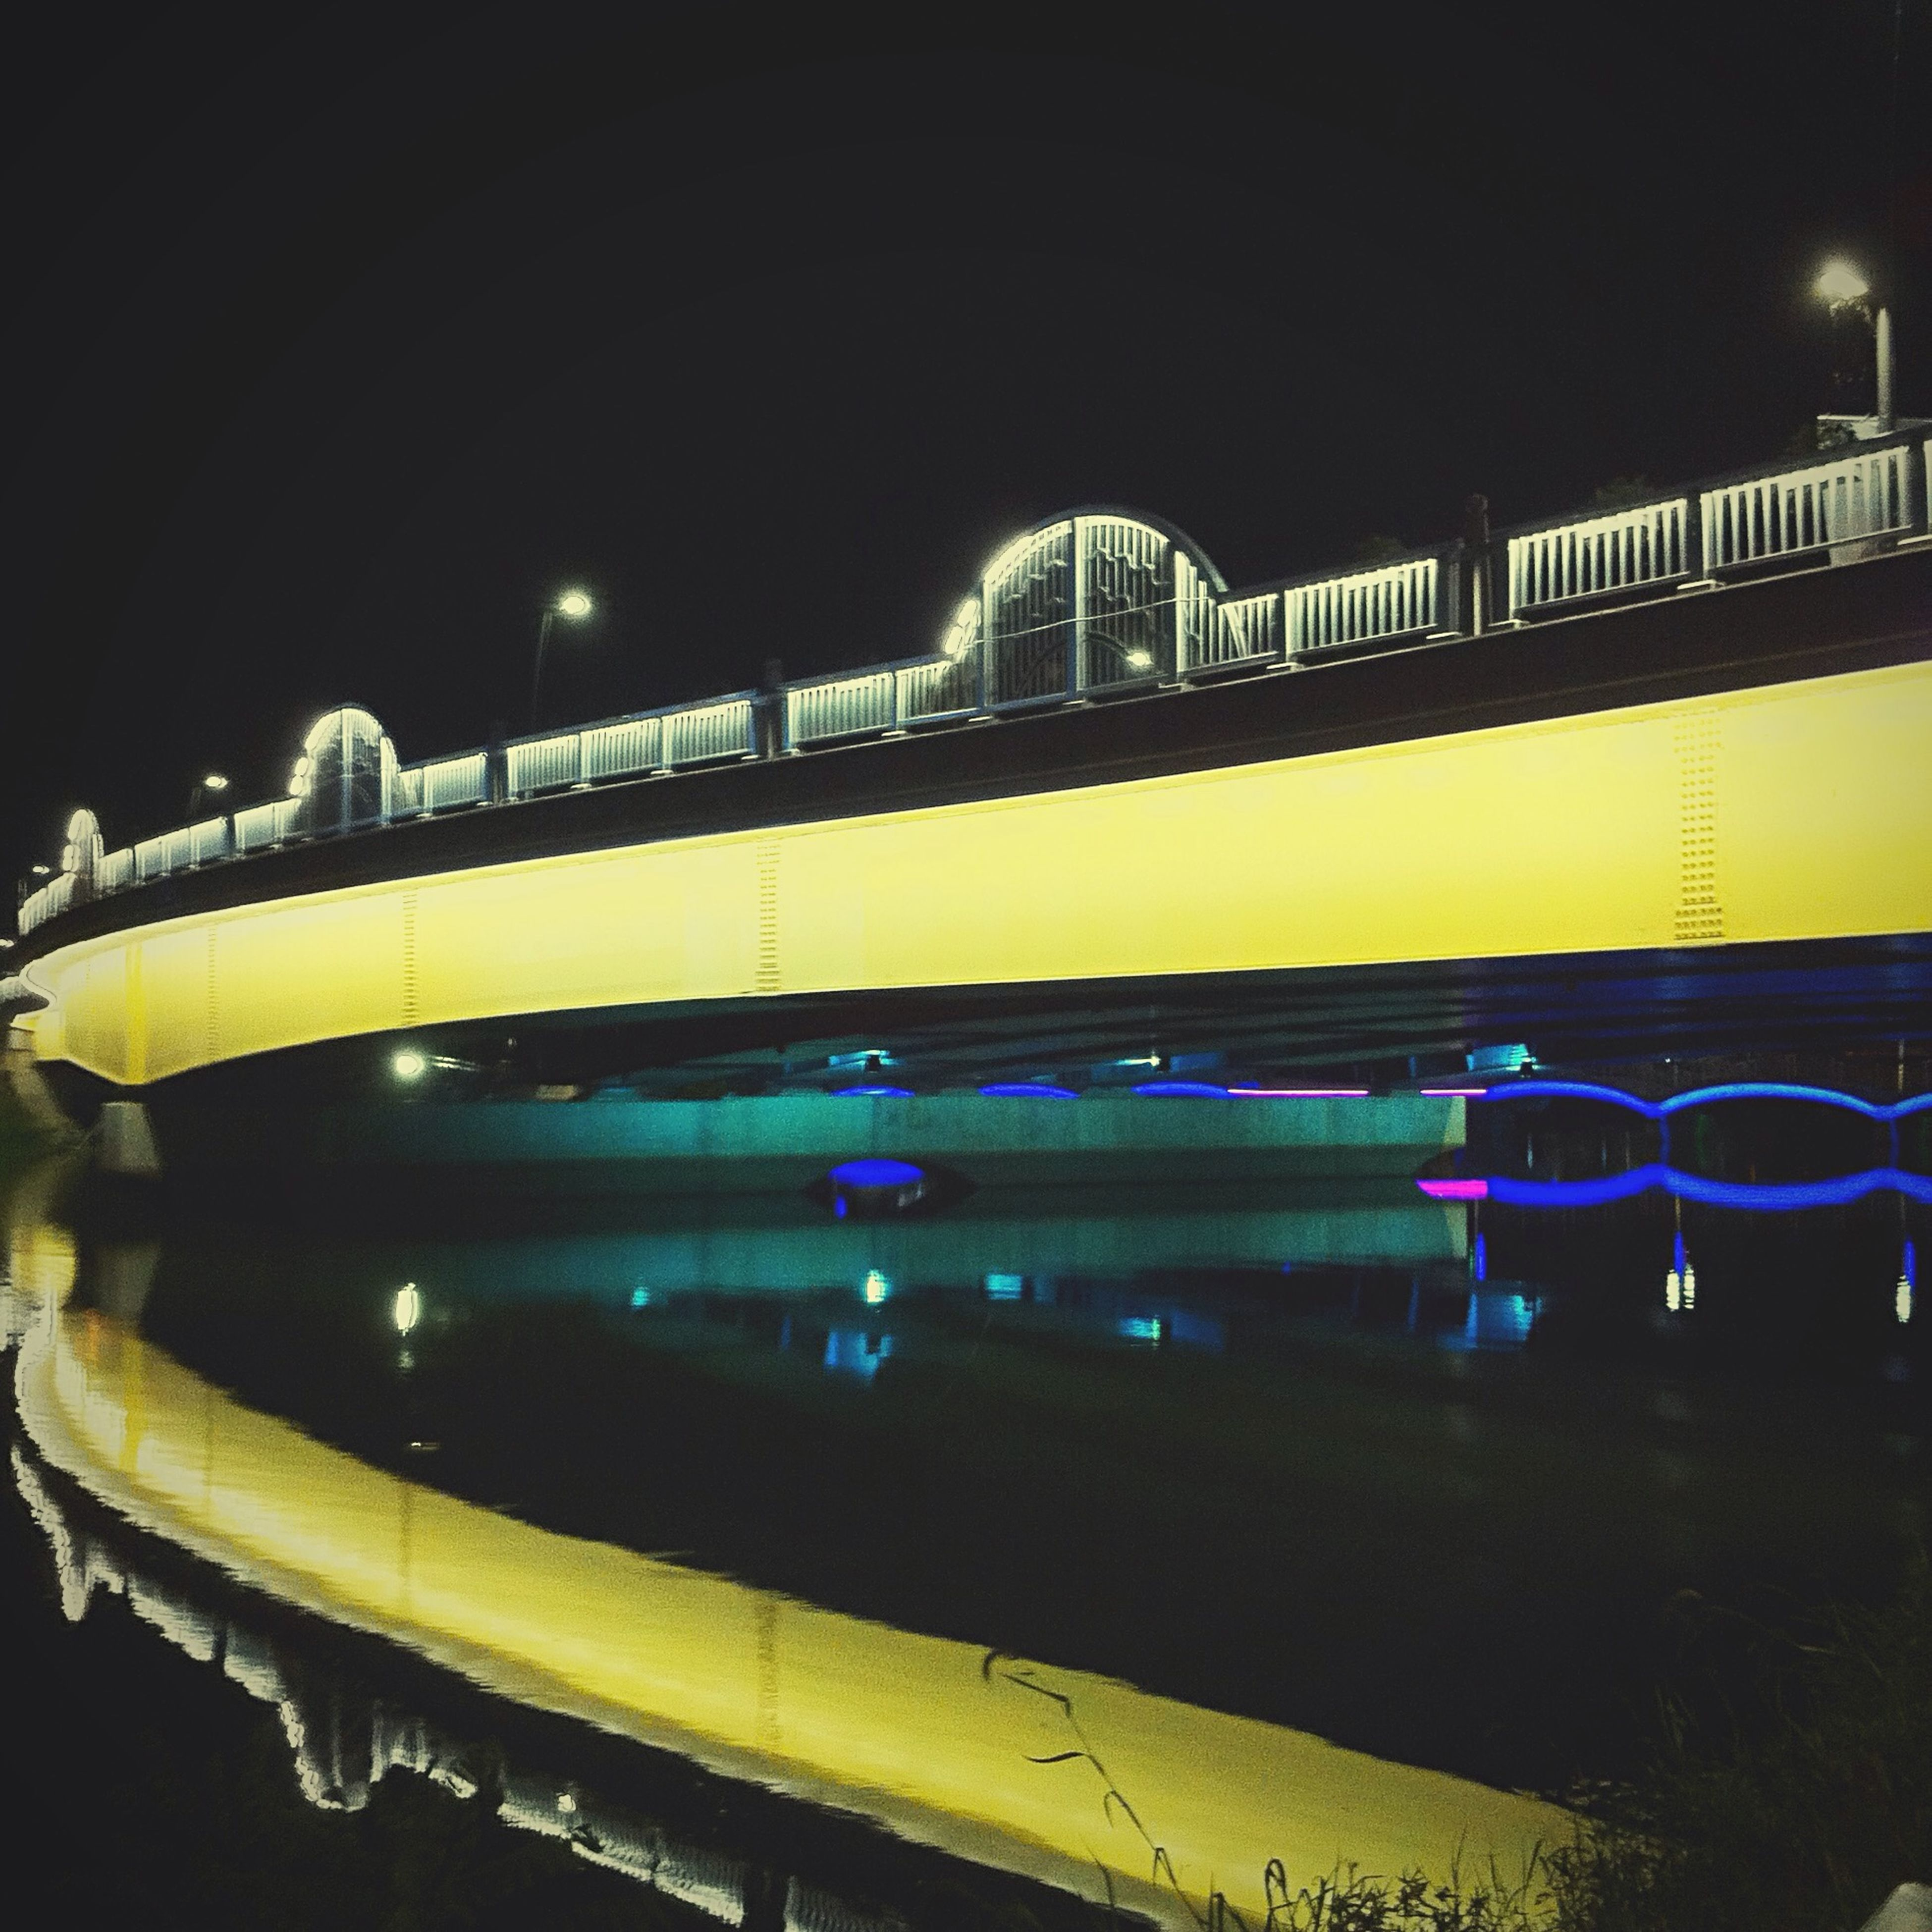 illuminated, night, architecture, built structure, transportation, indoors, yellow, arch, mode of transport, railing, building exterior, railroad station, public transportation, steps, no people, lighting equipment, bridge - man made structure, building, reflection, train - vehicle